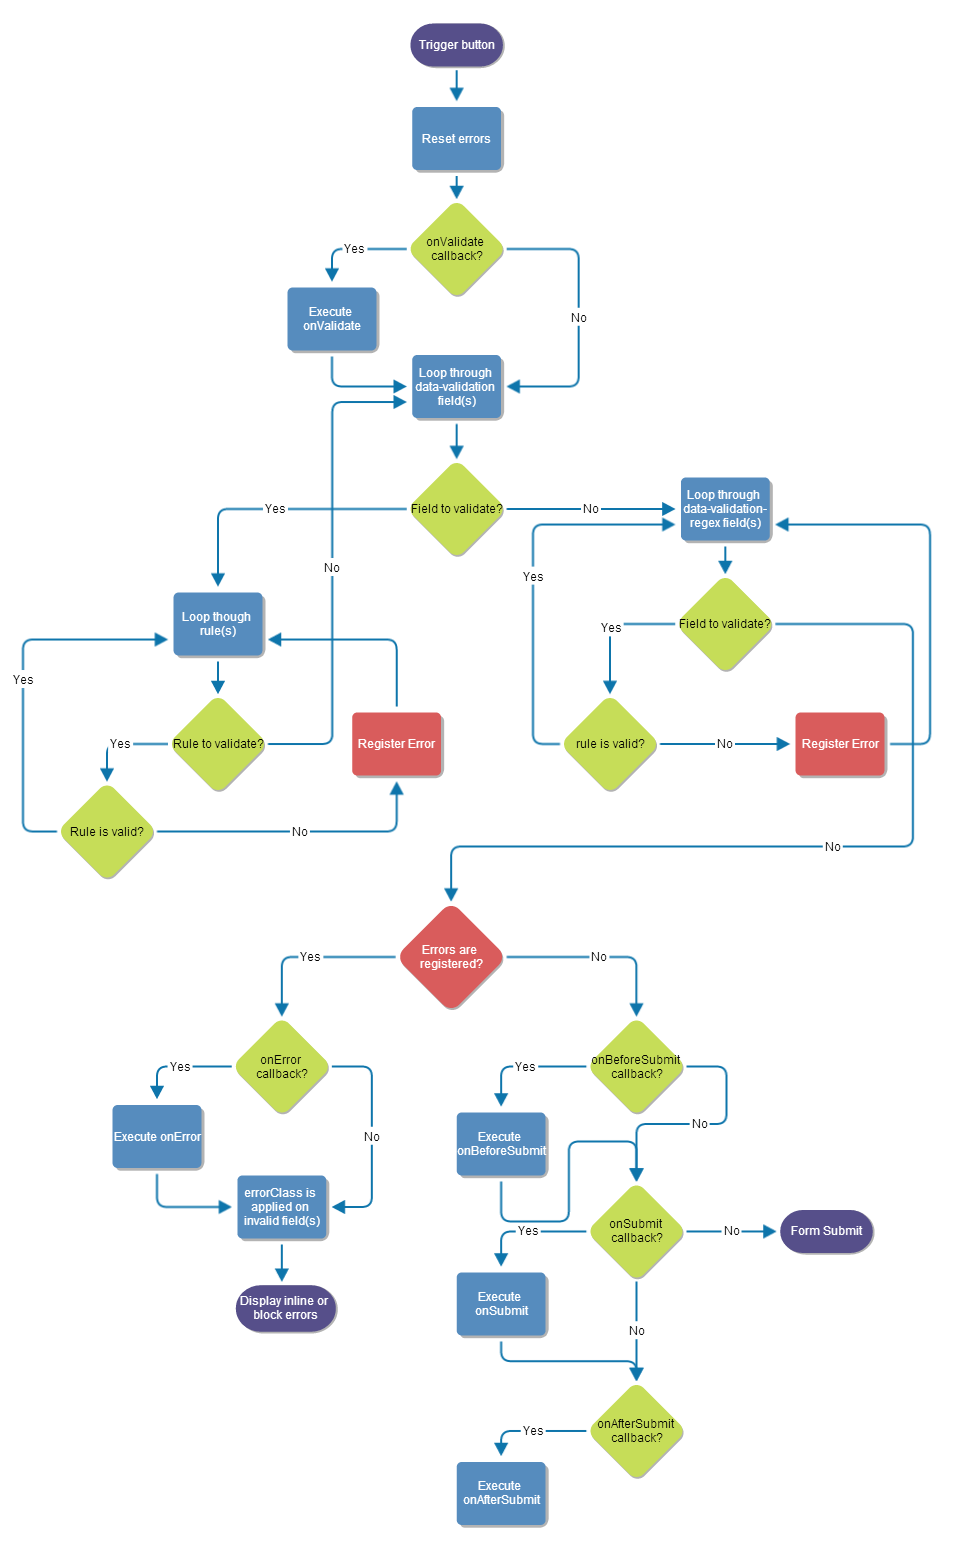 process flow chart jquery blueraritan info rh blueraritan info Business Process Flow Diagram Manufacturing Process Flow Diagram